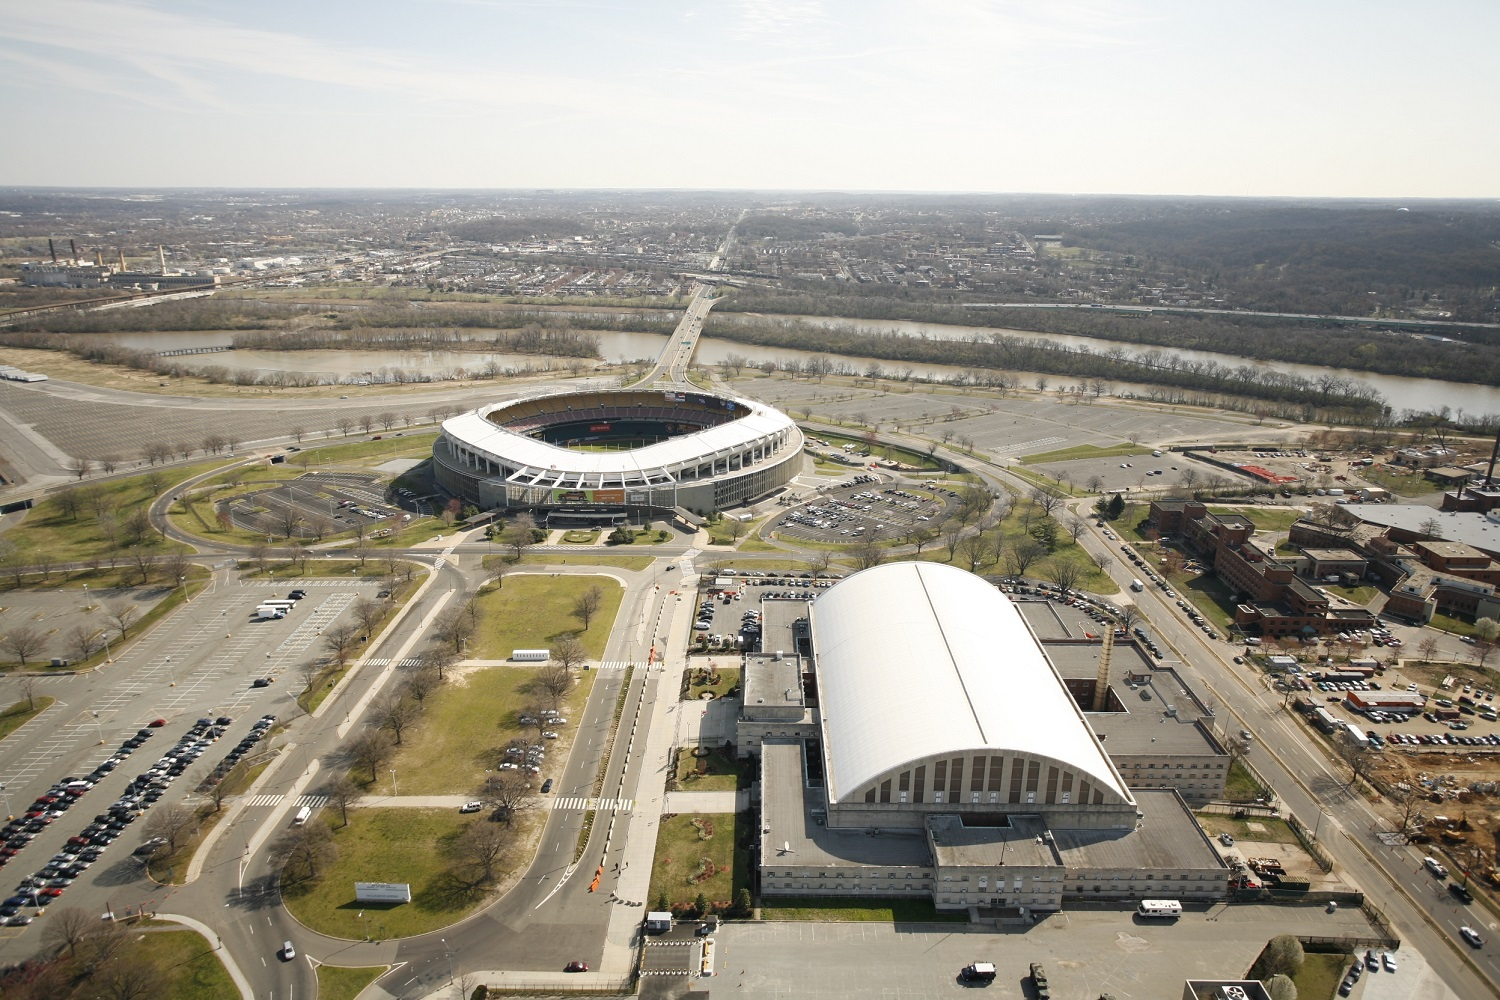 What's next for RFK?